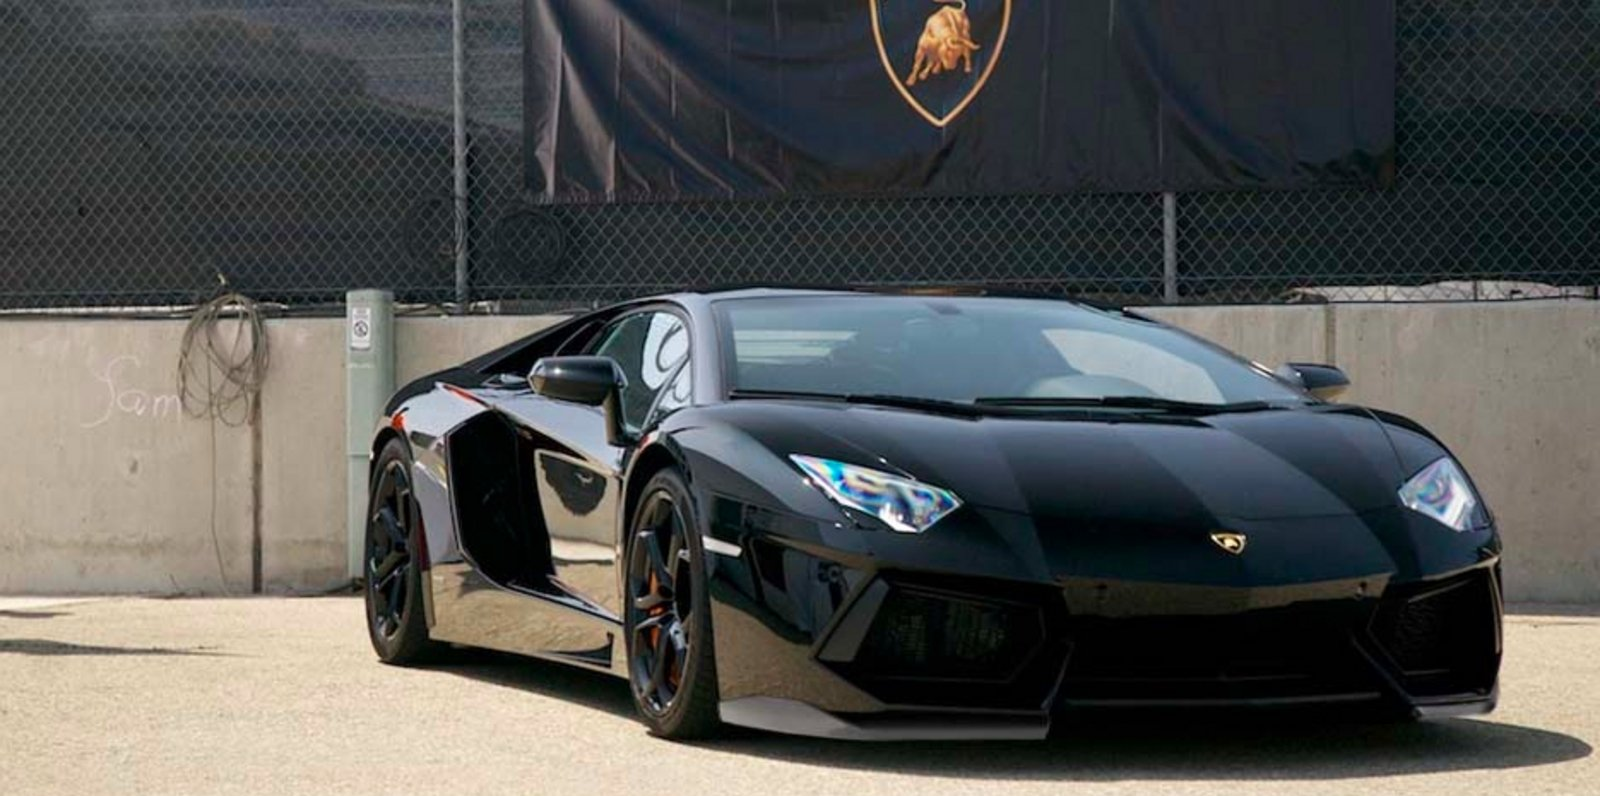 2012 lamborghini aventador lp700 4 allegro by dmc tuning review top speed. Black Bedroom Furniture Sets. Home Design Ideas